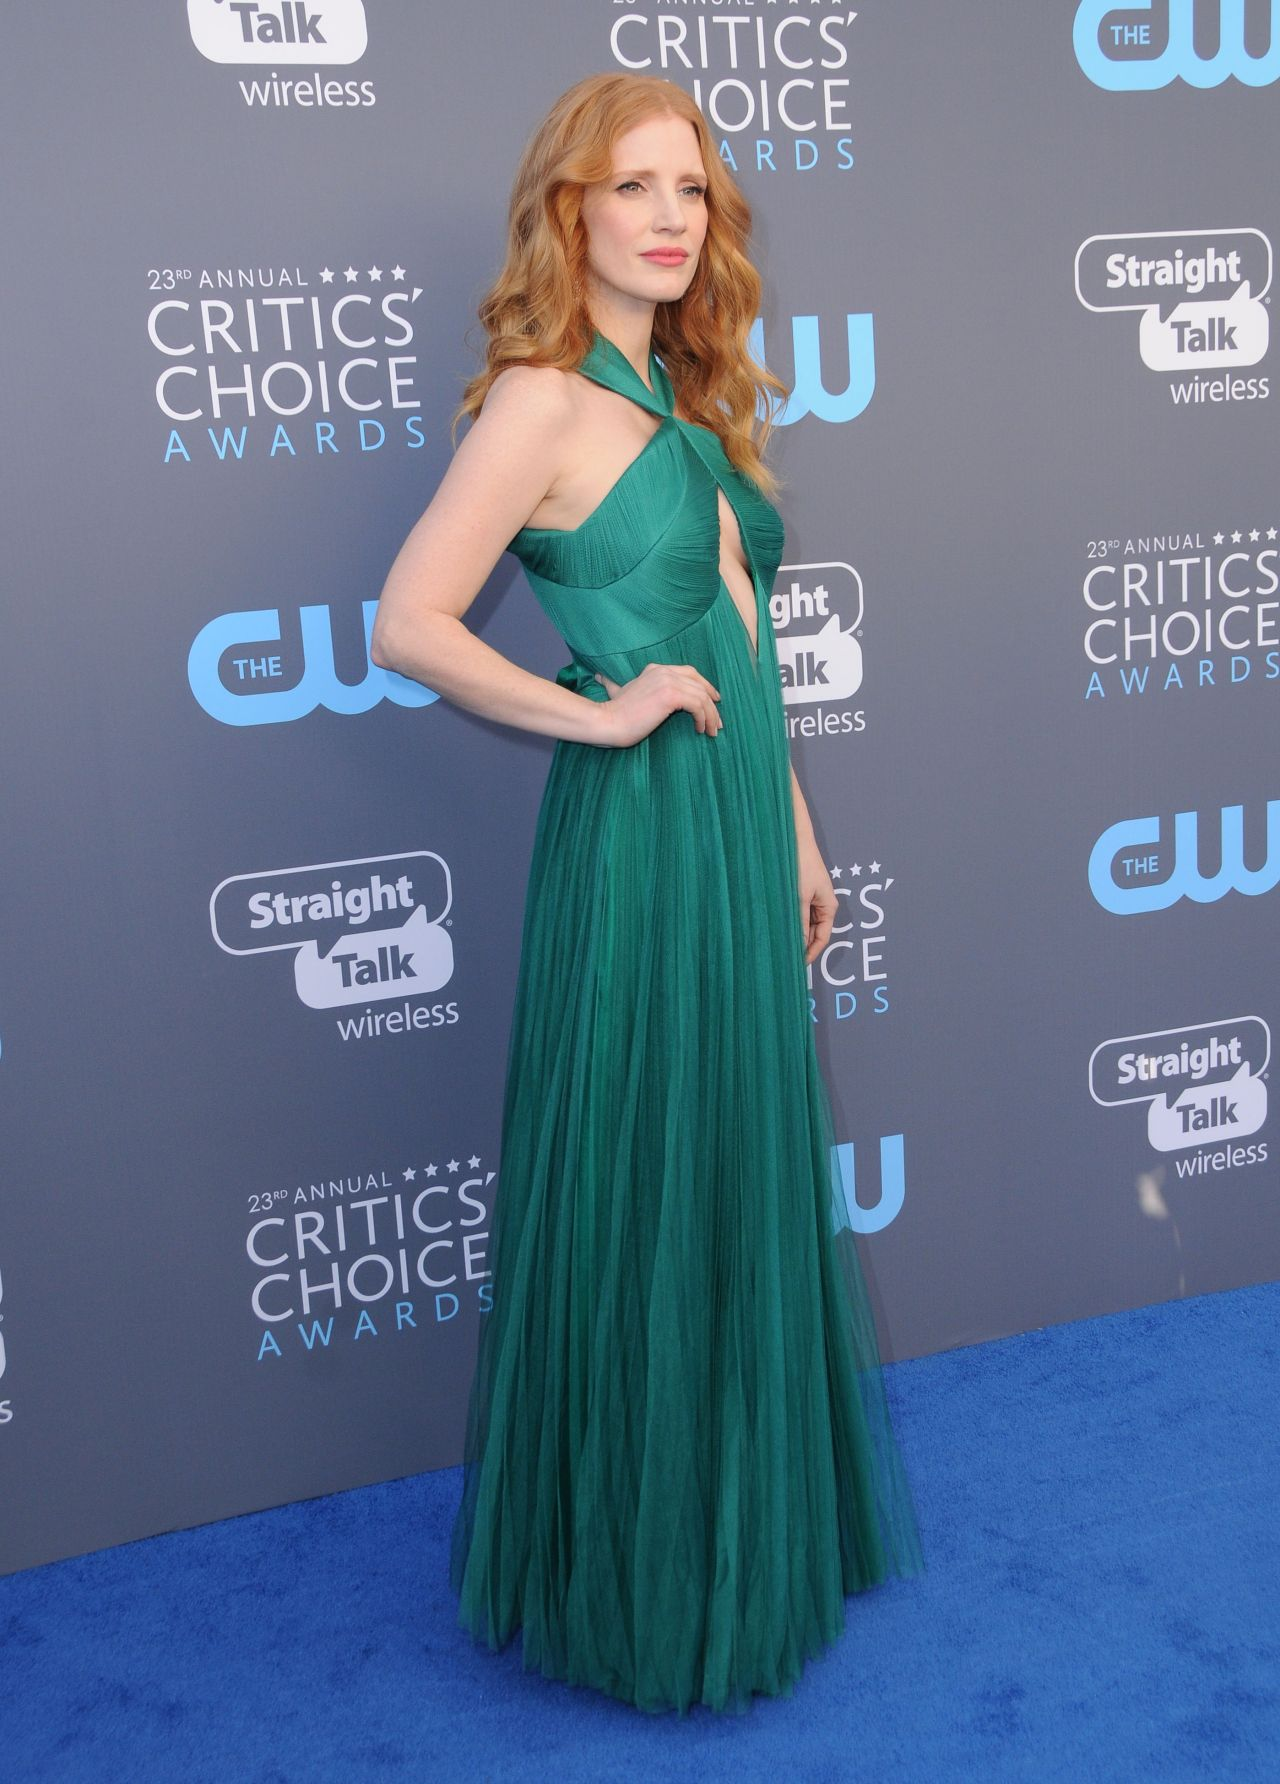 http://celebmafia.com/wp-content/uploads/2018/01/jessica-chastain-2018-critics-choice-awards-4.jpg